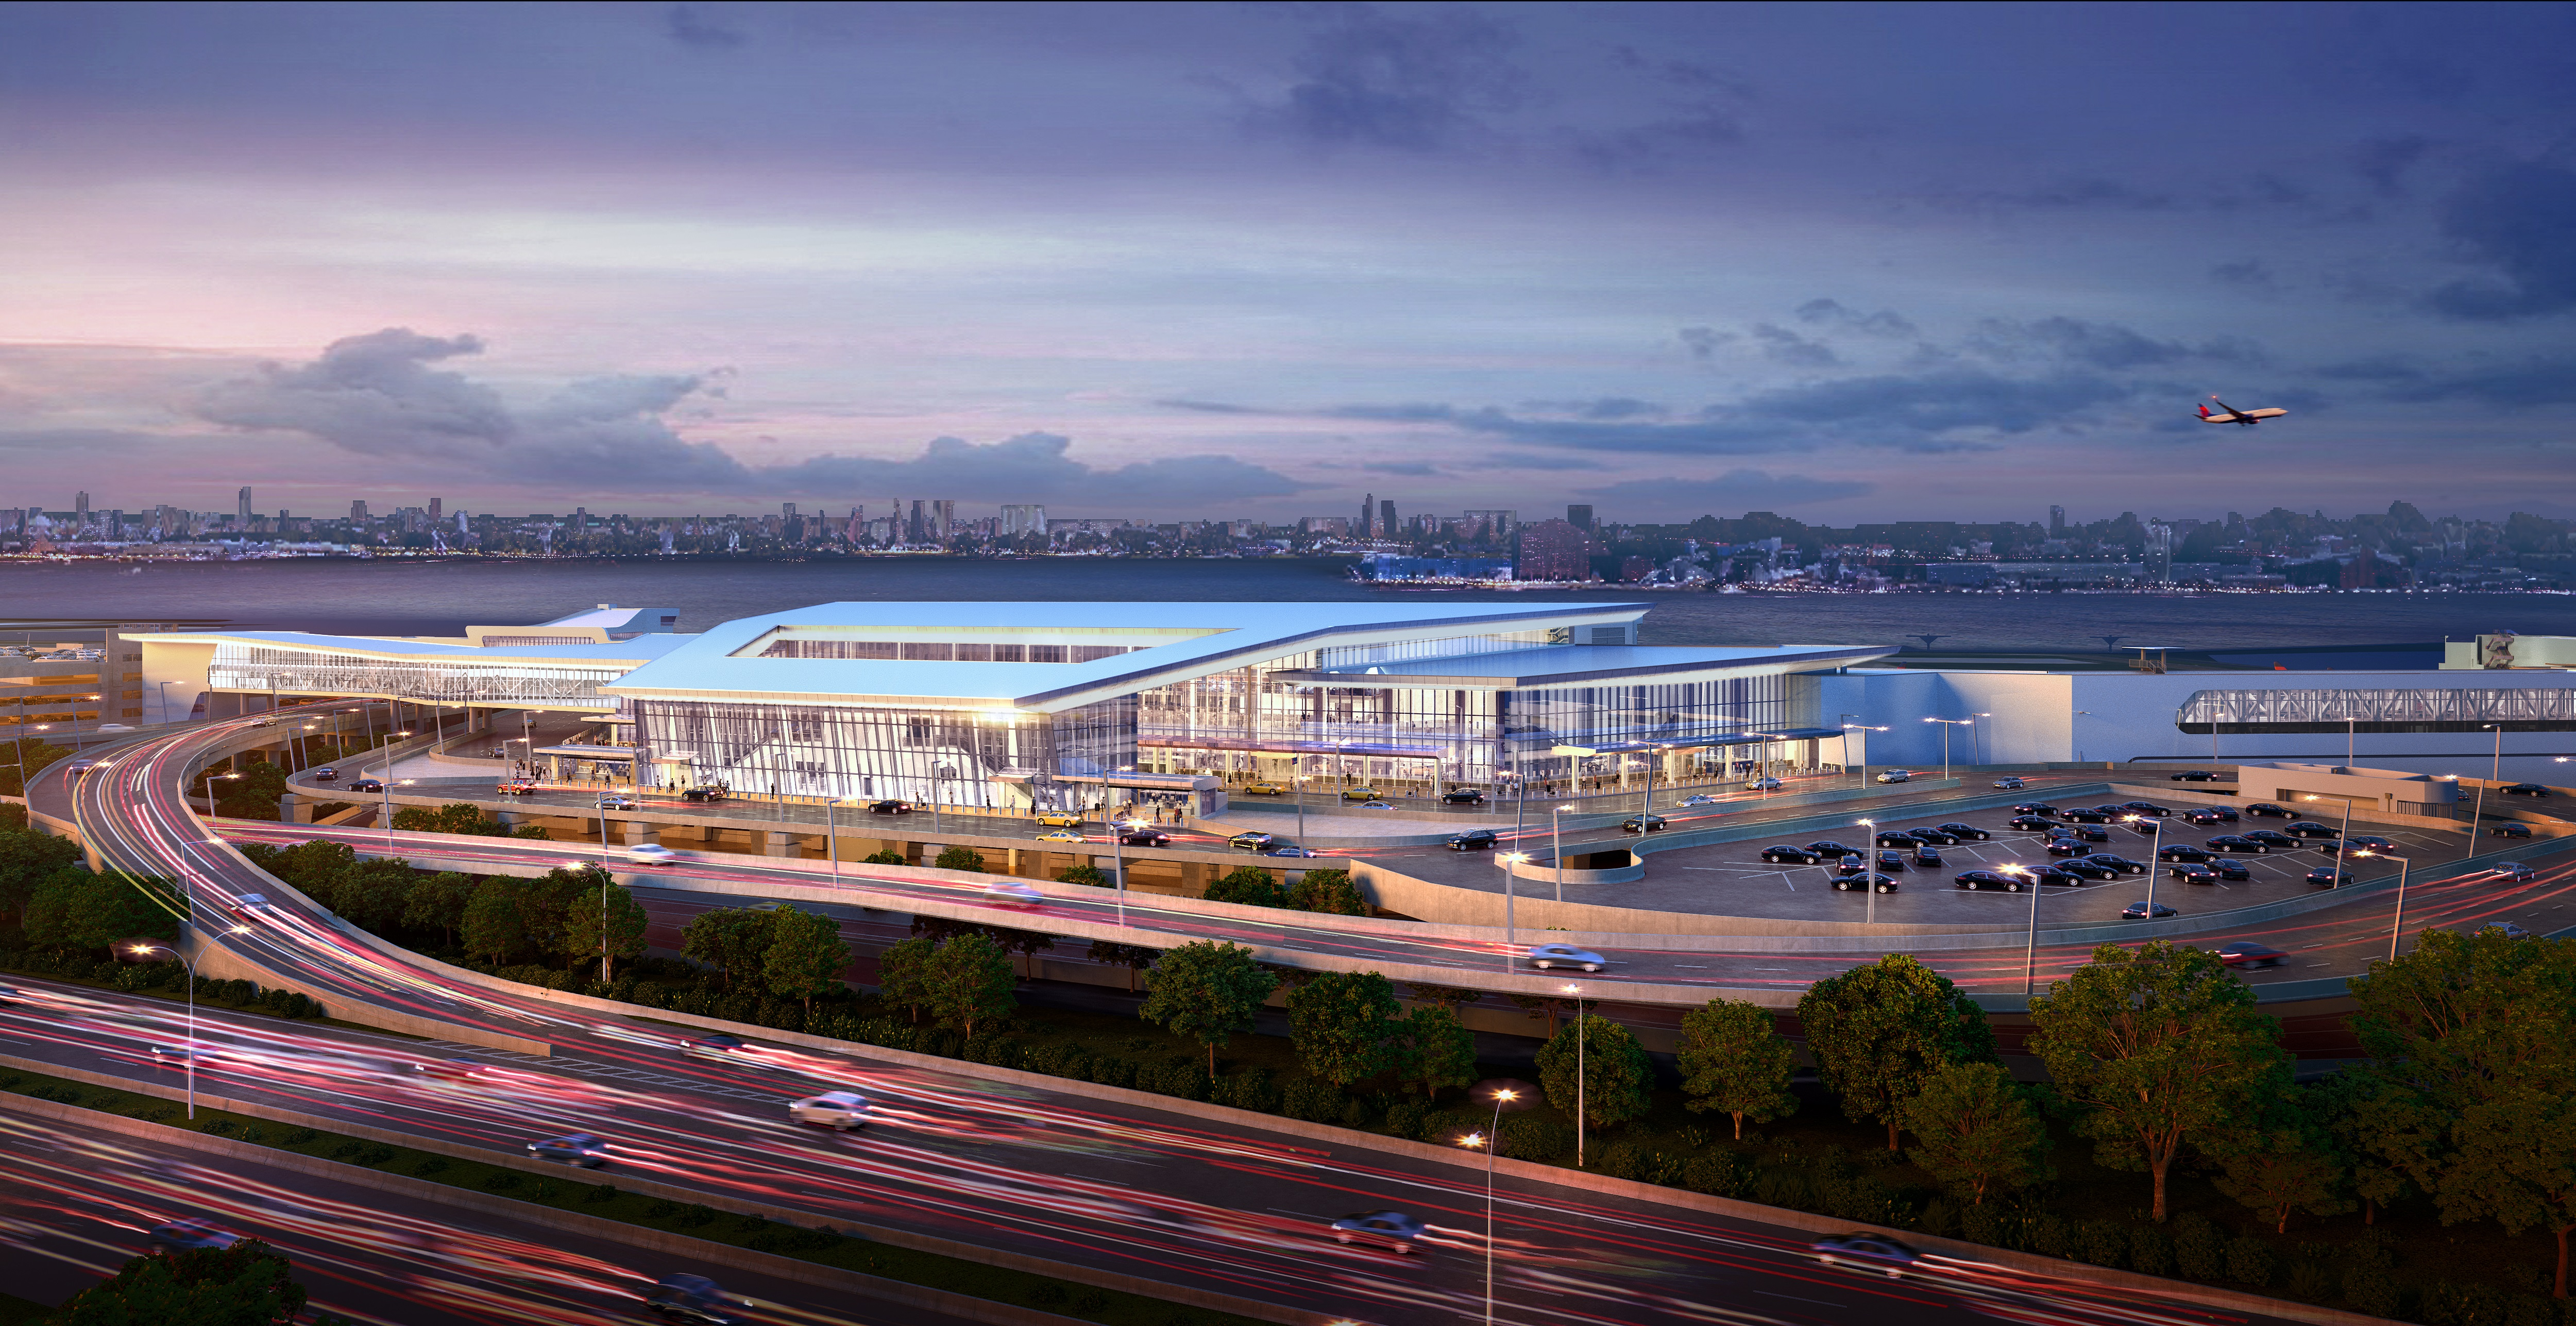 Coming into view: Delta's first new LaGuardia concourse to open this fall